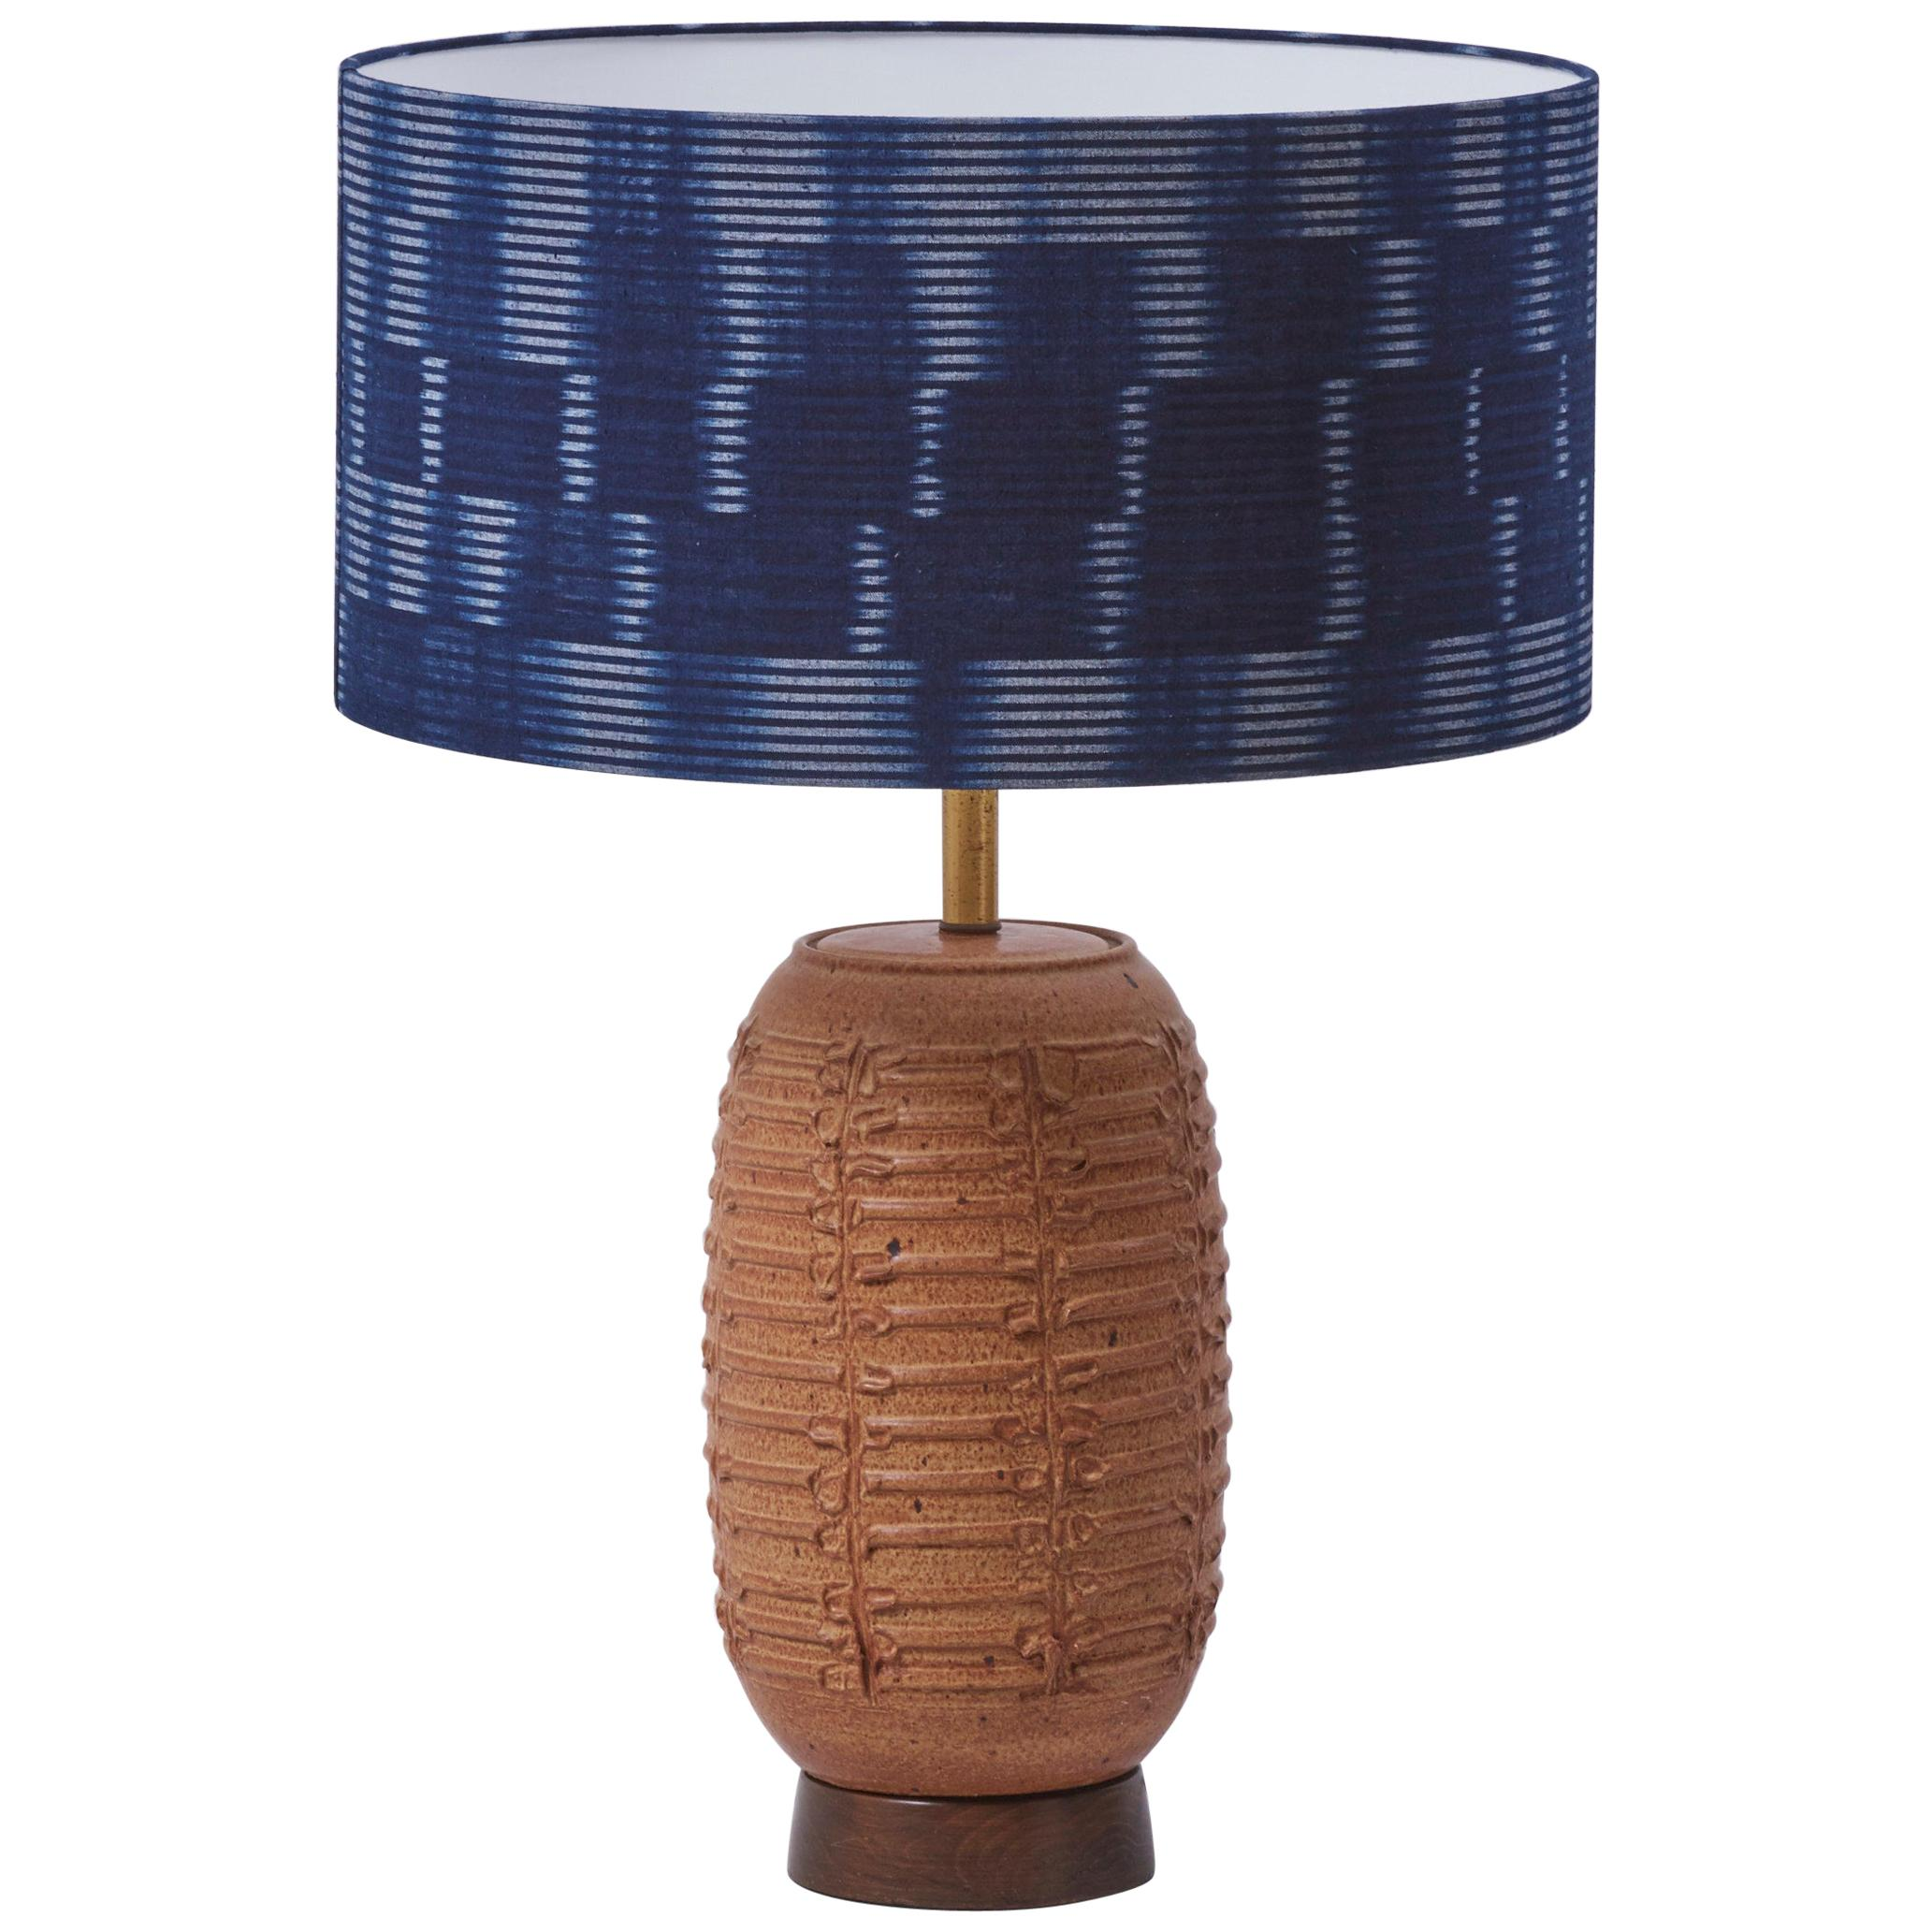 Ceramic Table Lamp by Affiliated Craftsmen Bob Kinzie, US, 1960s